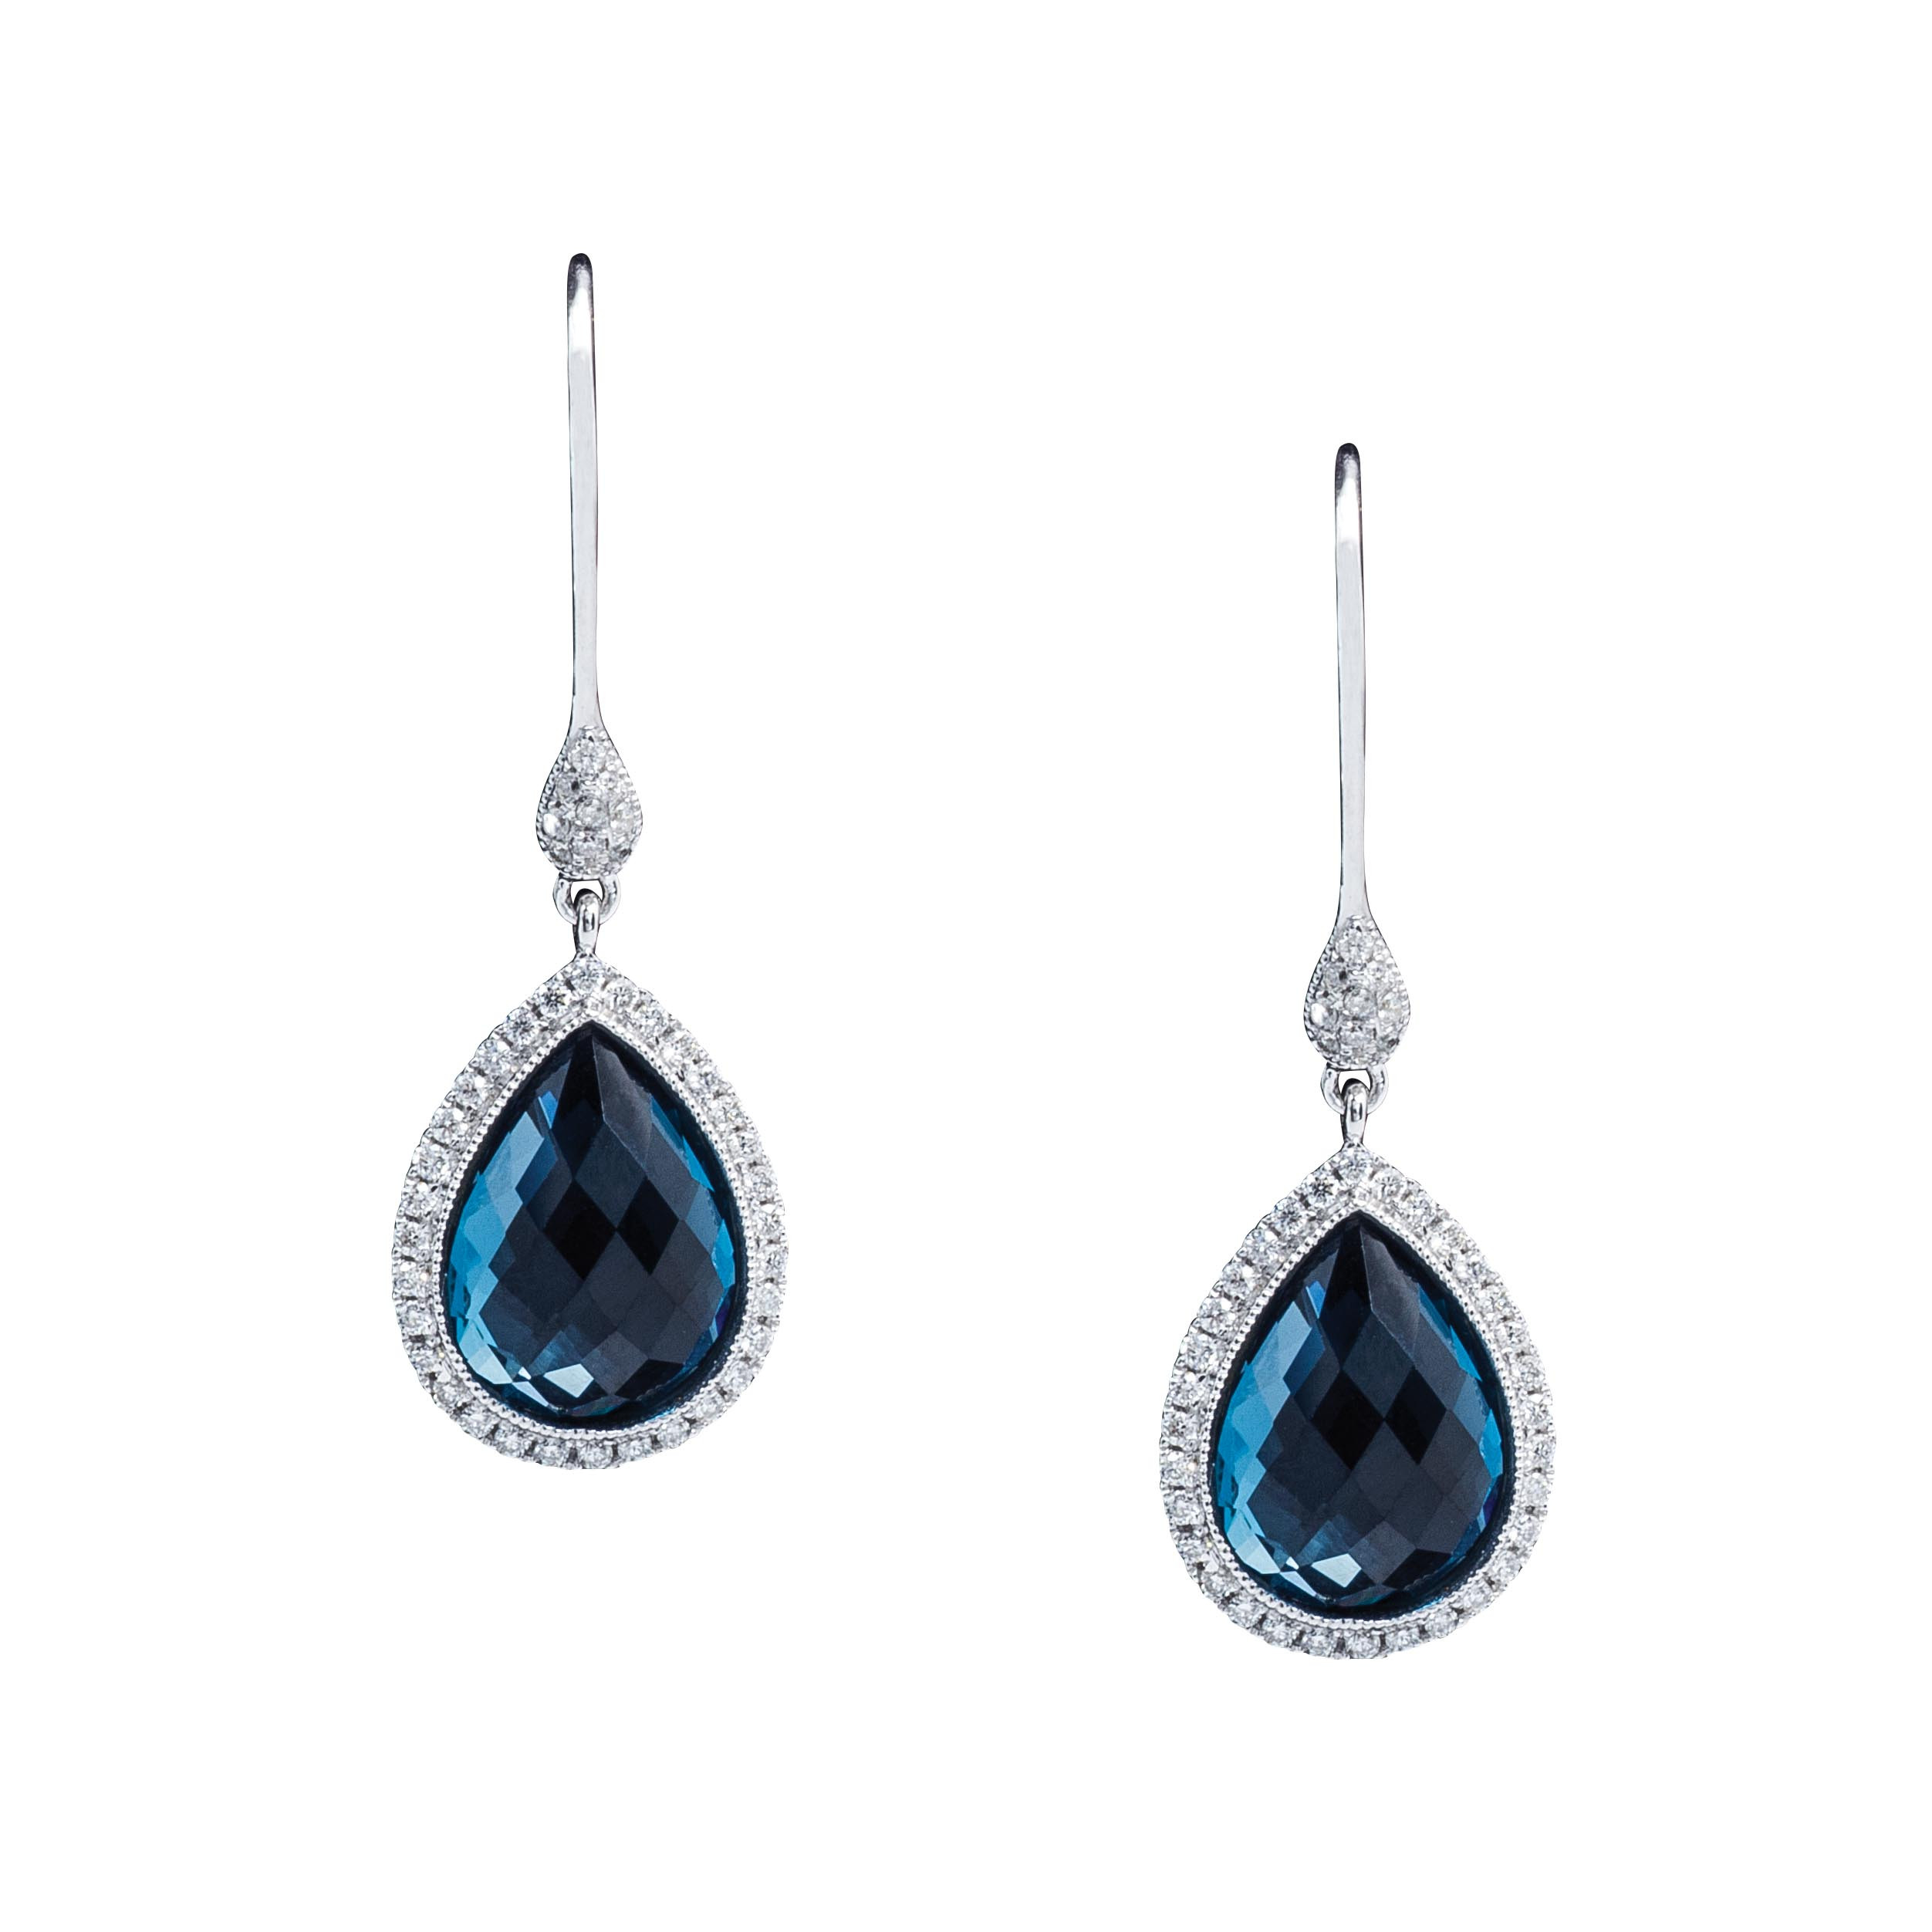 New 7.12 CTW London Blue Topaz & Diamond Earrings